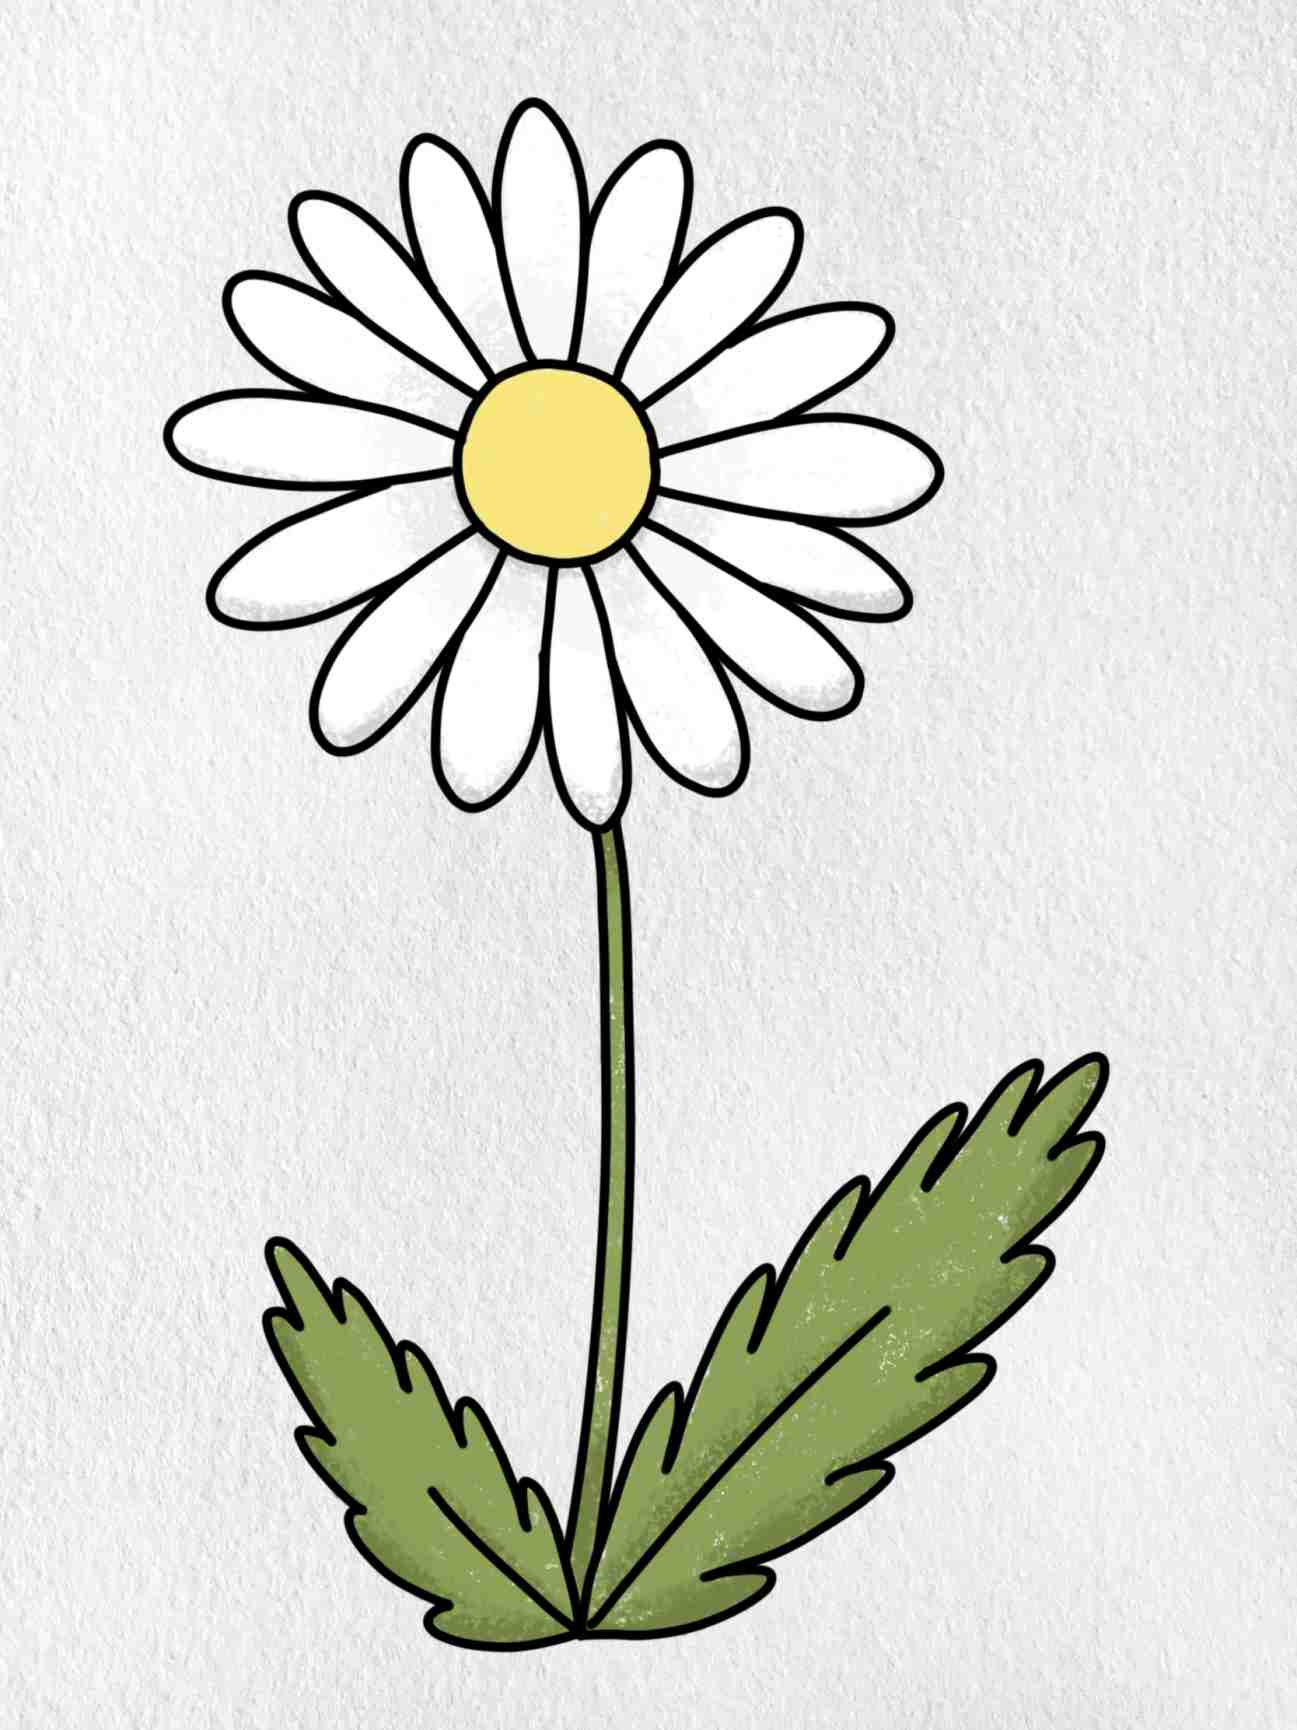 How To Draw A Daisy Flower: Step 6